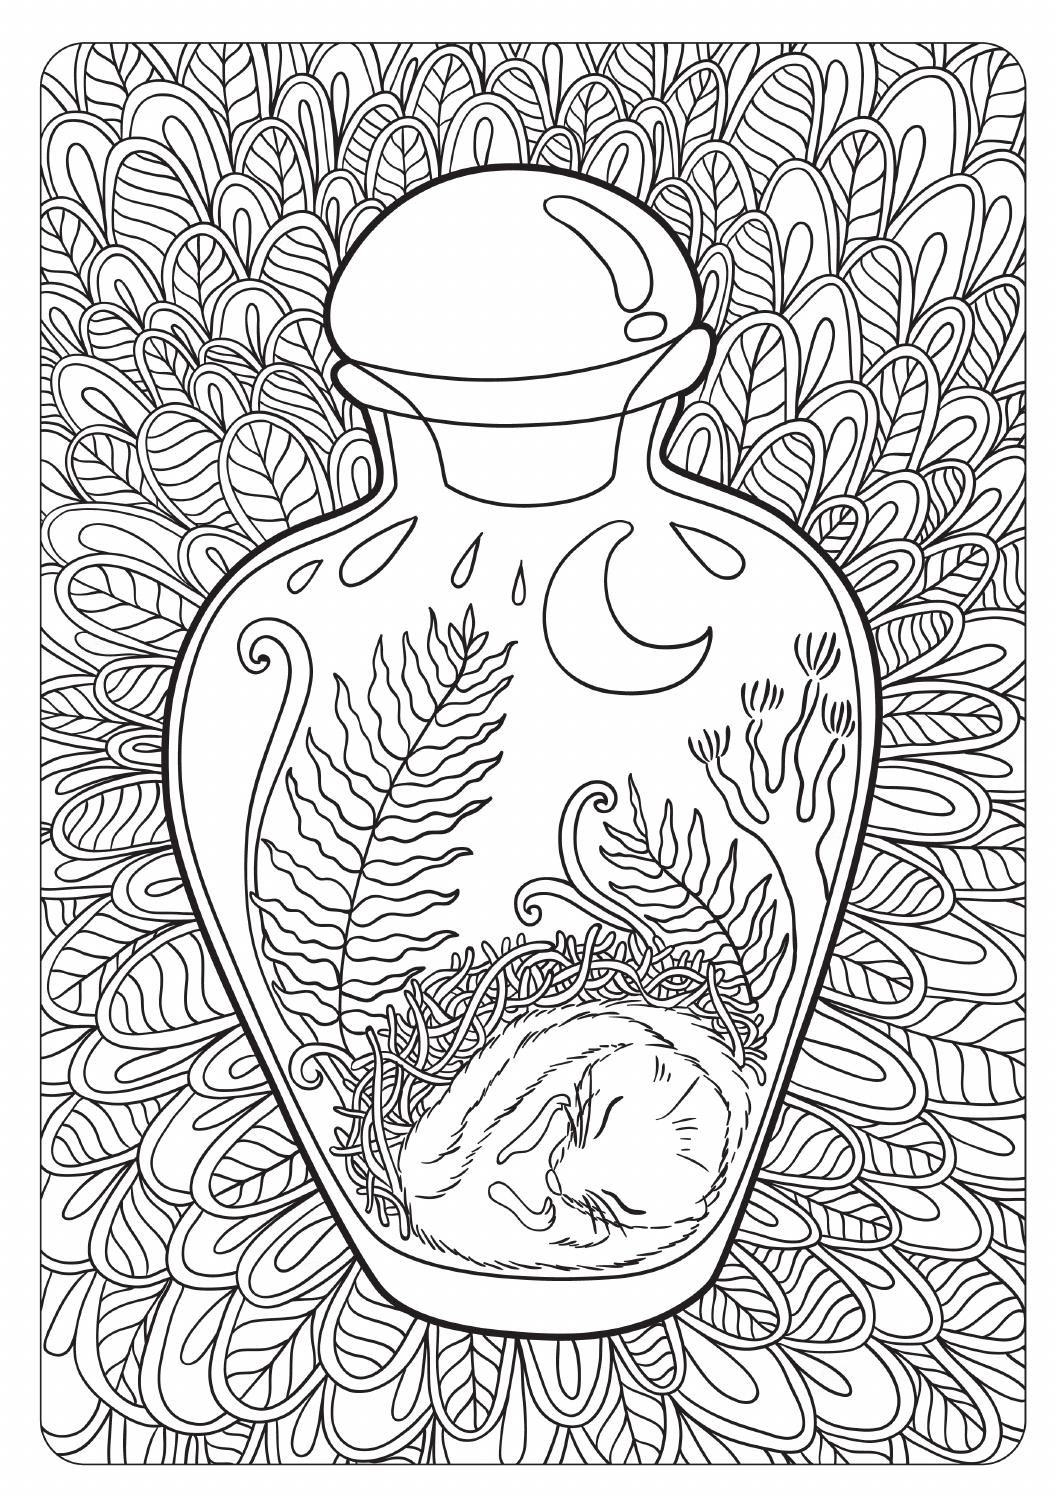 The Tales Of Old Forest Free Anti Stress Coloring Book For Adult And Children